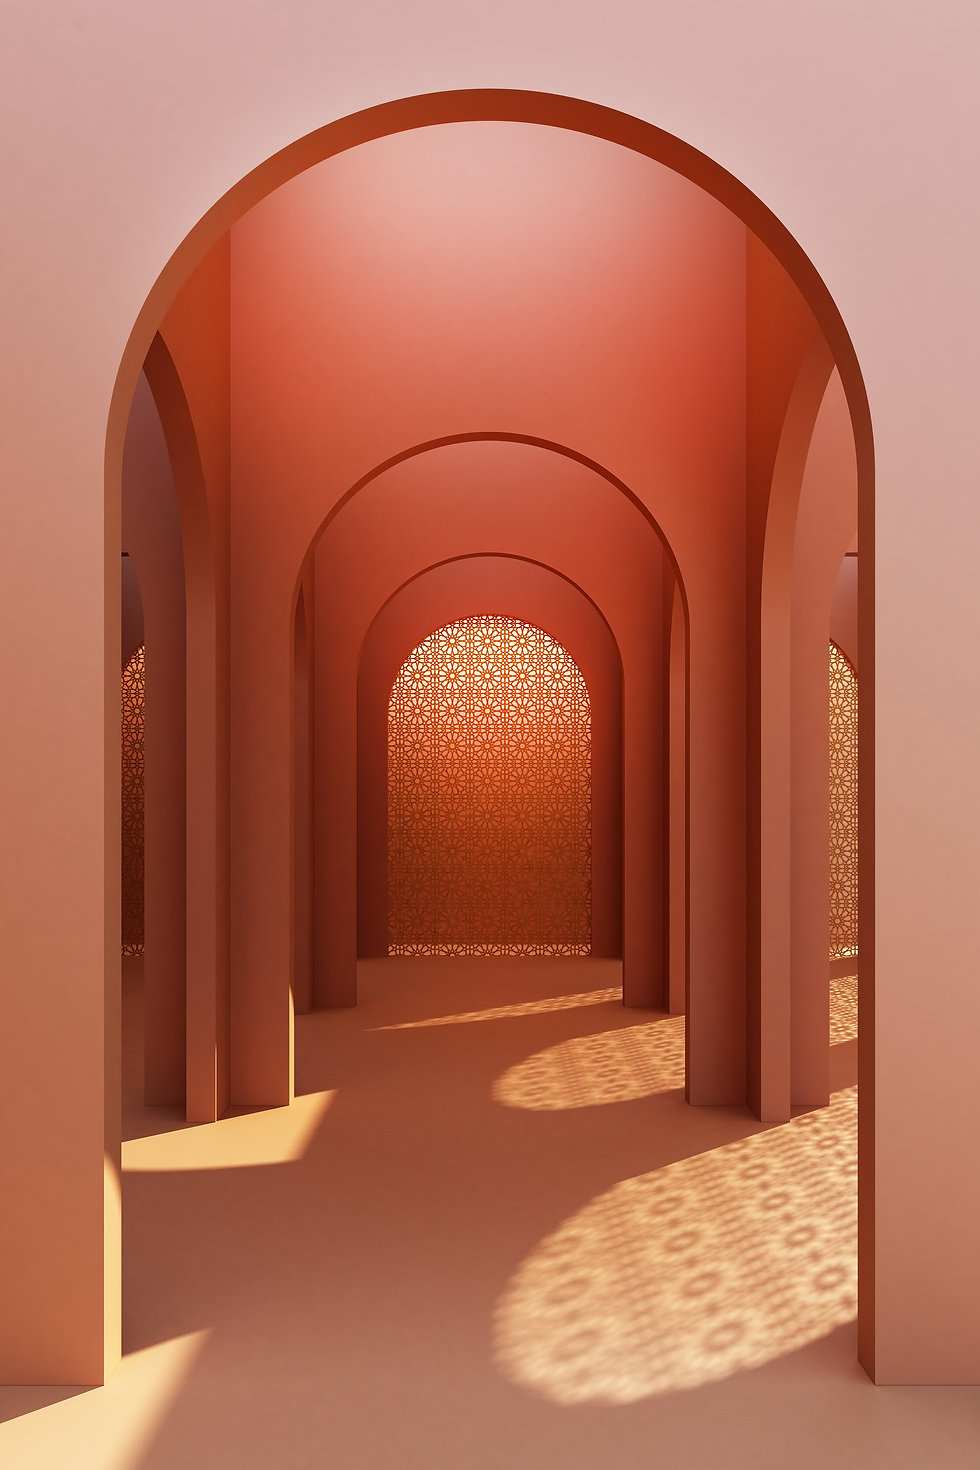 Tangerine arches walls highlighted in daylight